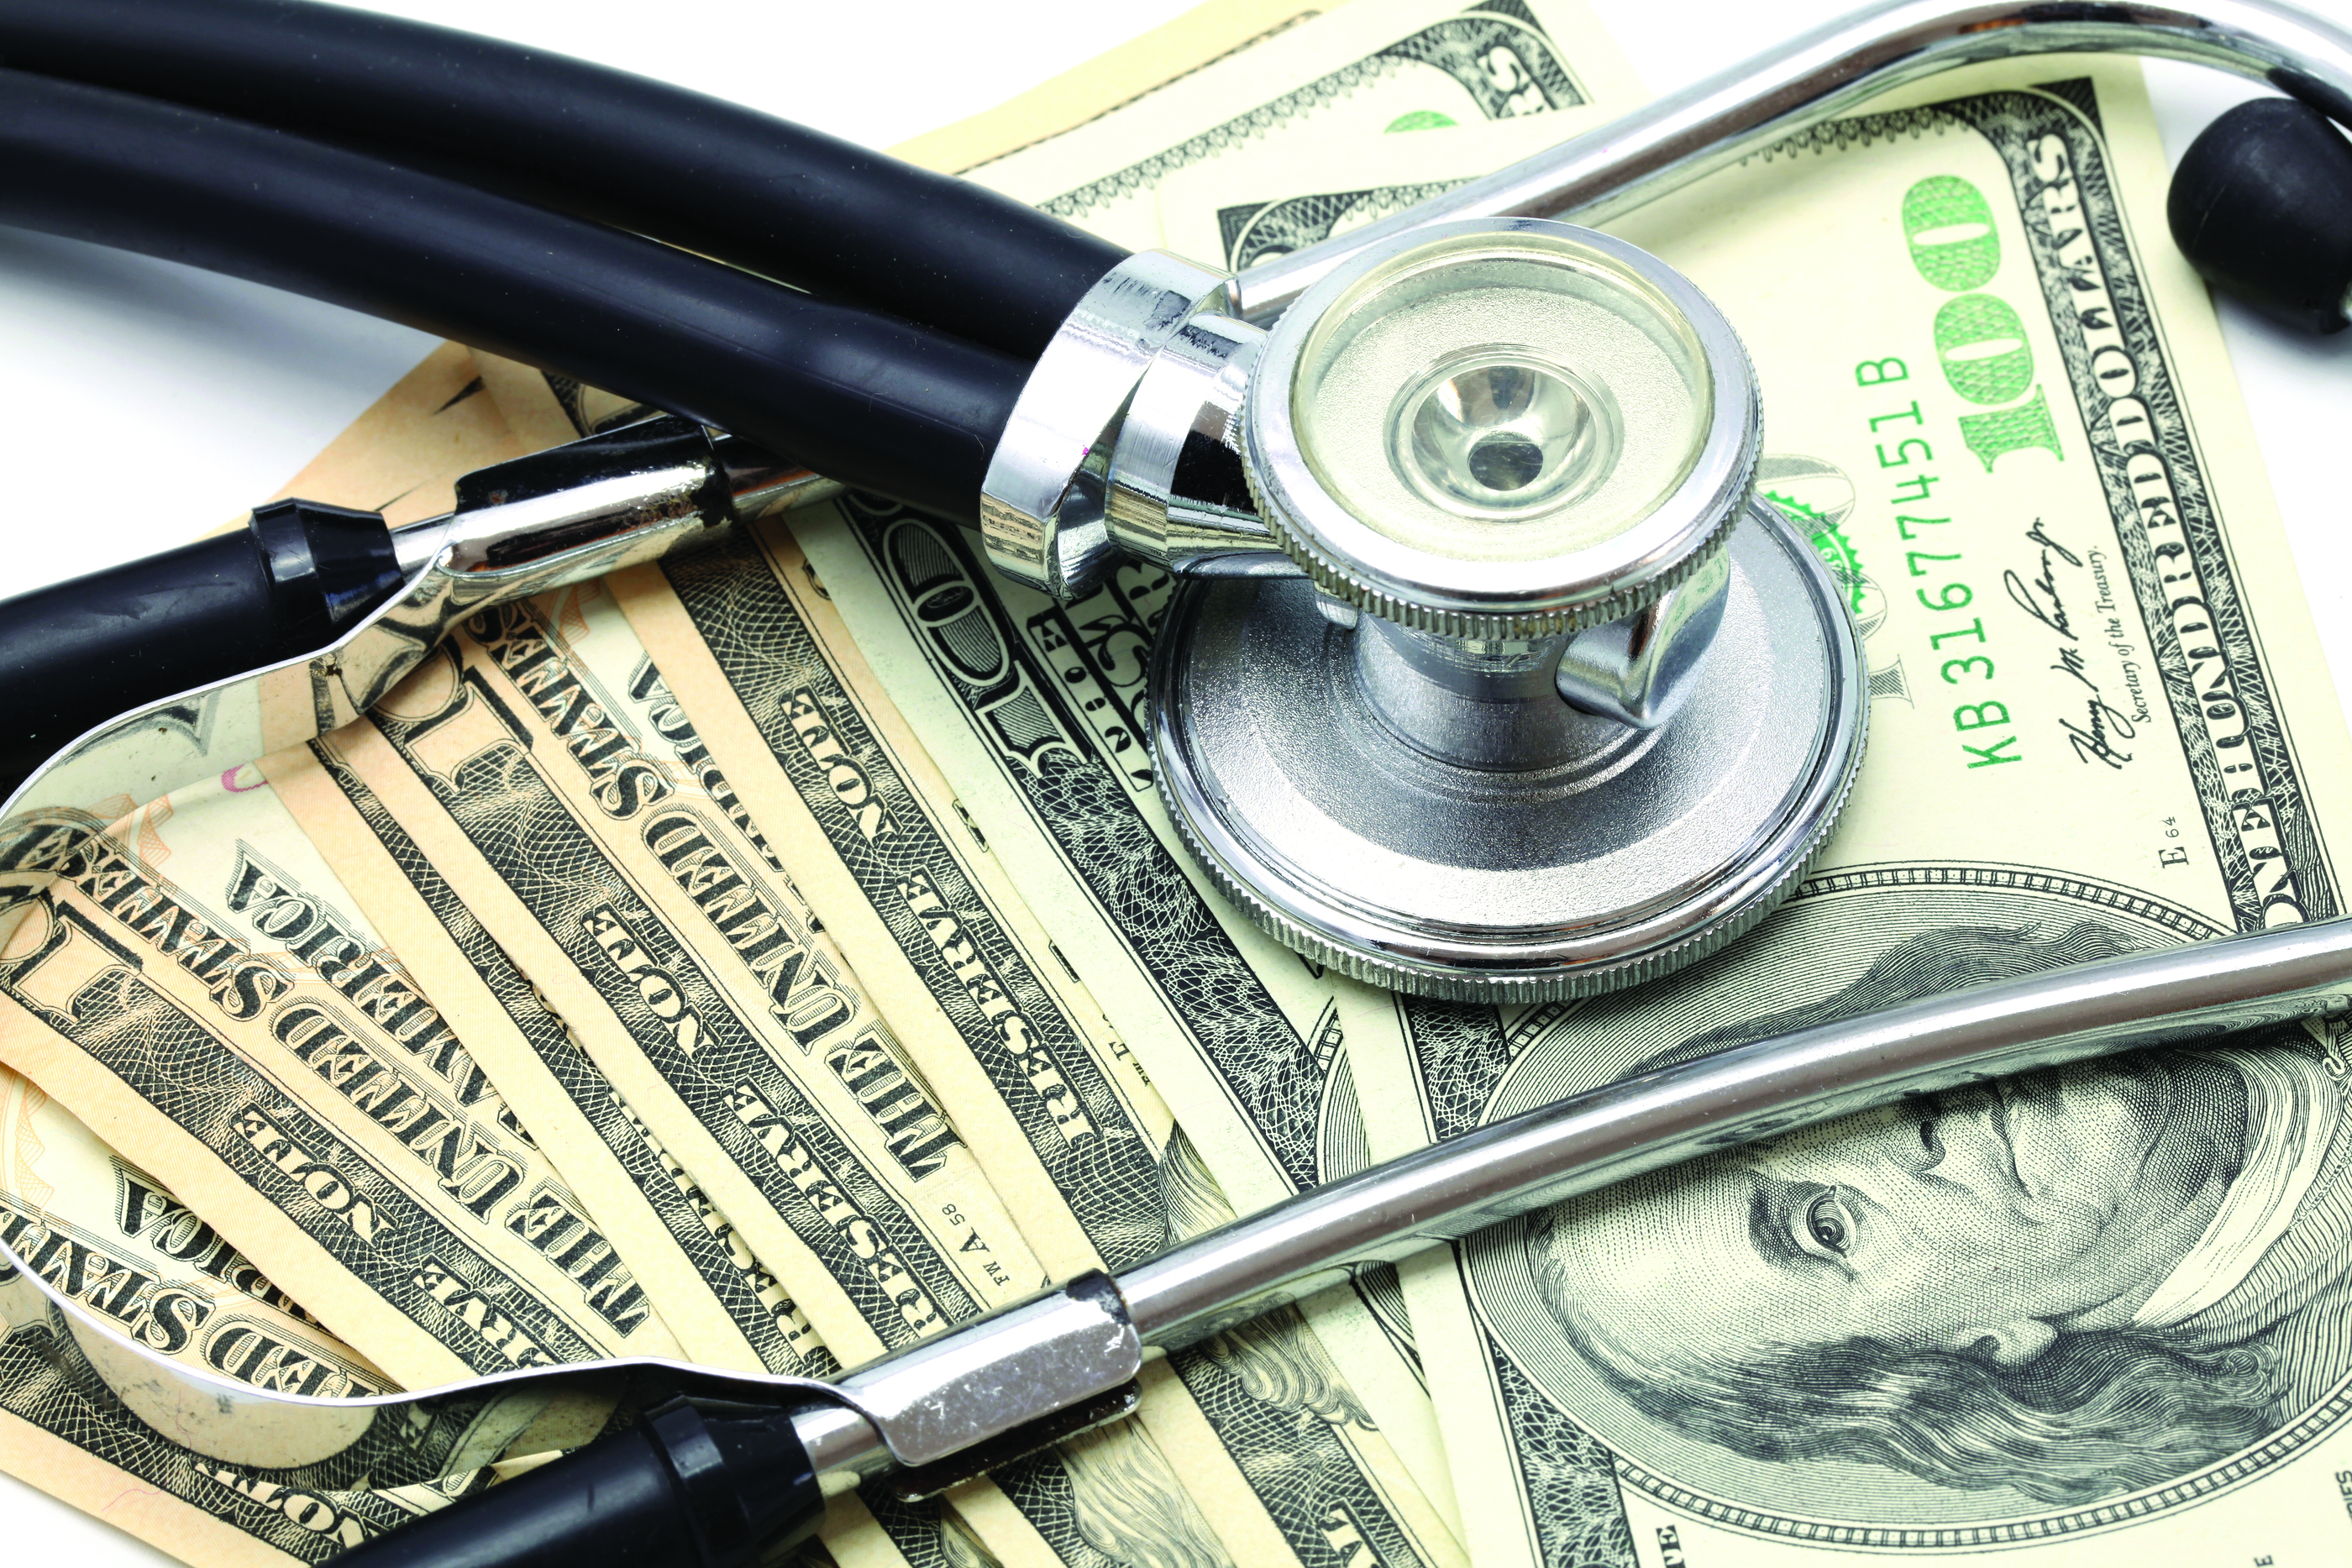 bigstock-stethoscope-on-money-dollar